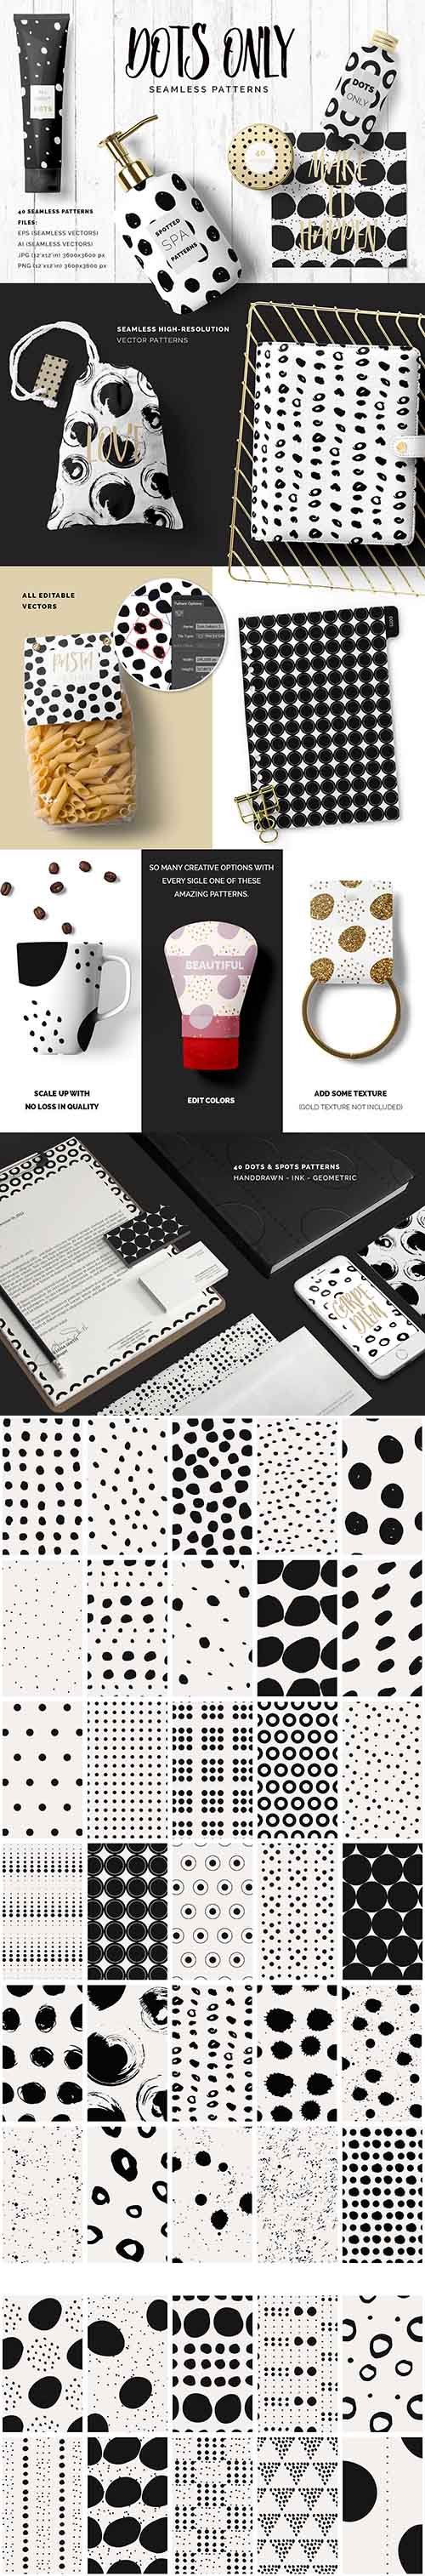 Dots Spots Seamless Patterns - CM 1395223